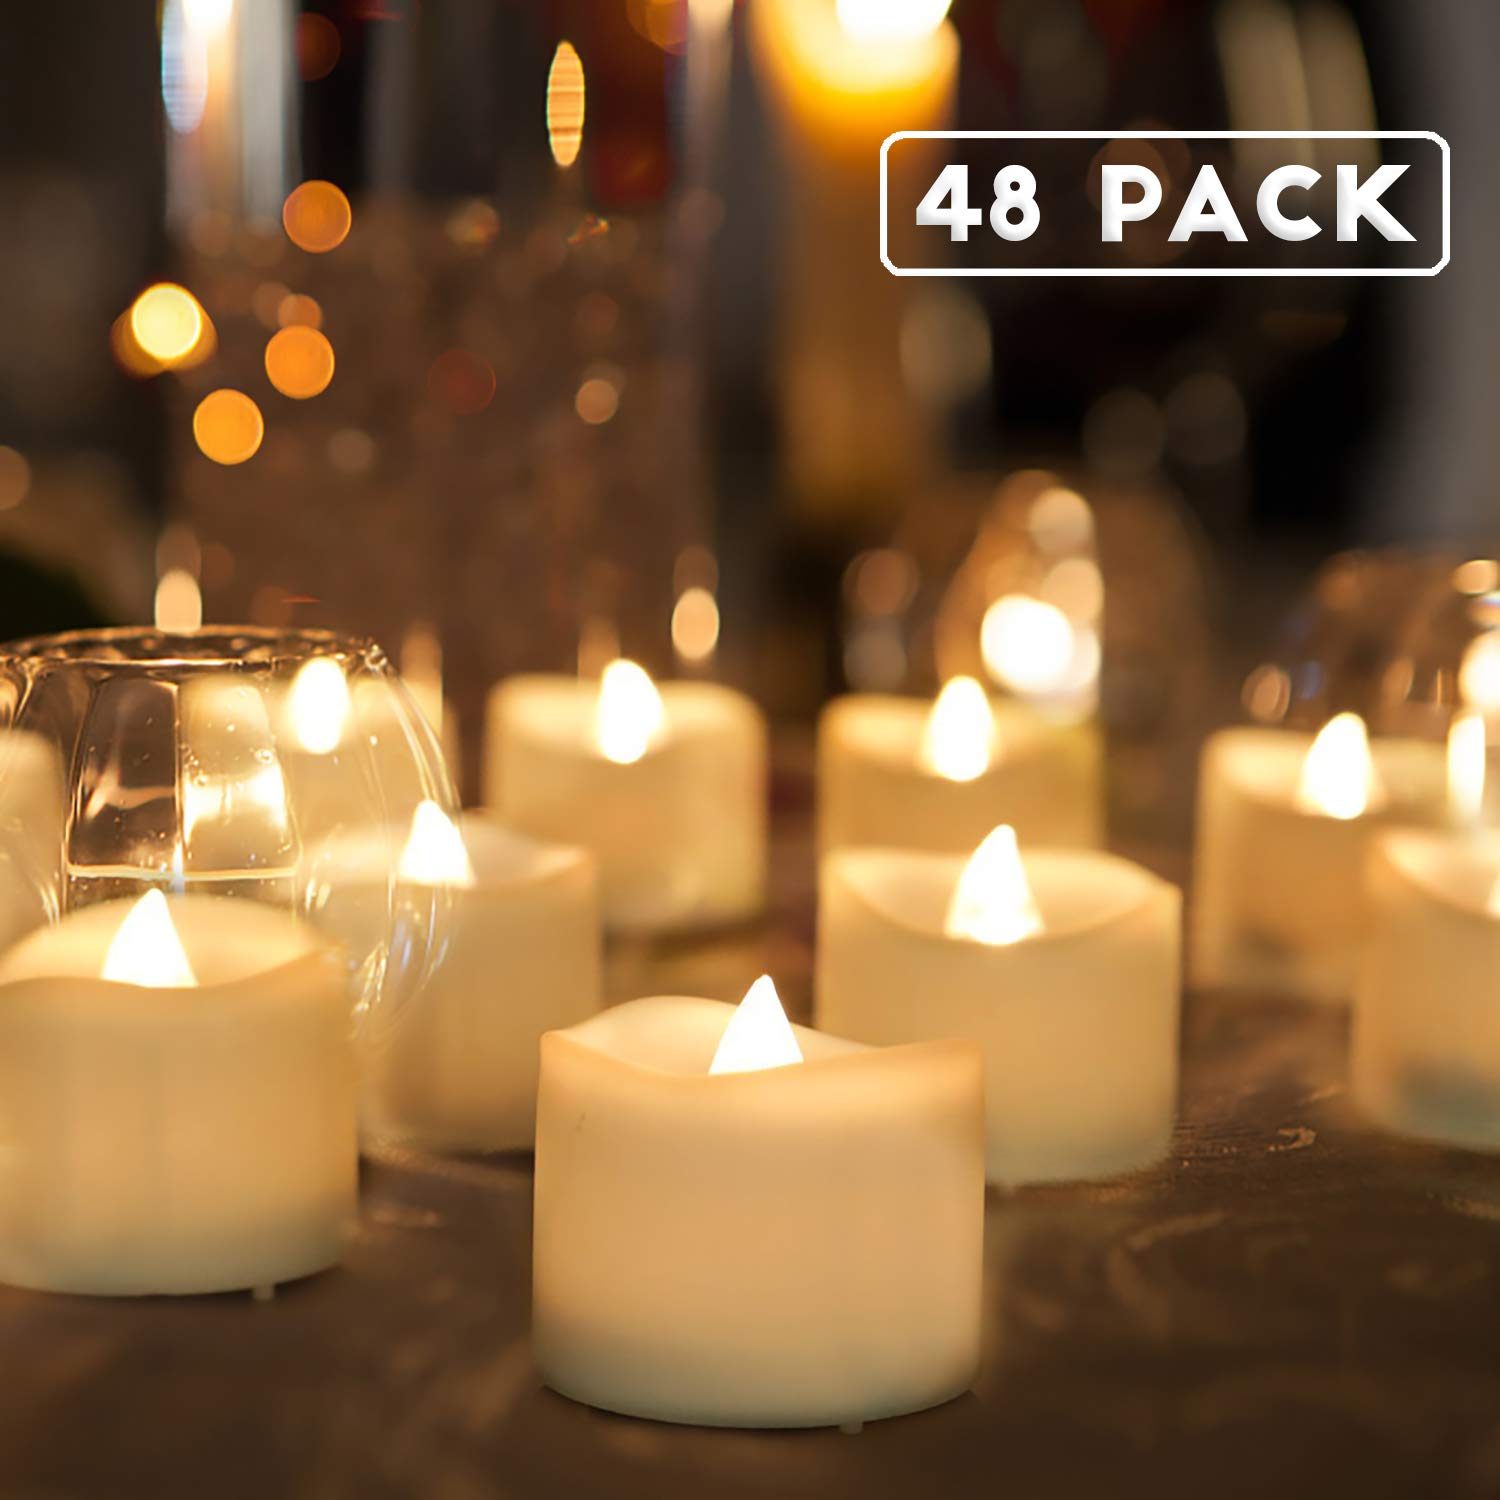 Homemory Battery Tea Lights Bulk, 48-Pack LED Tea Lights, Flickering Tea Lights, Long Lasting Battery Life, Warm White, 1.25'' H X 1.4'' D